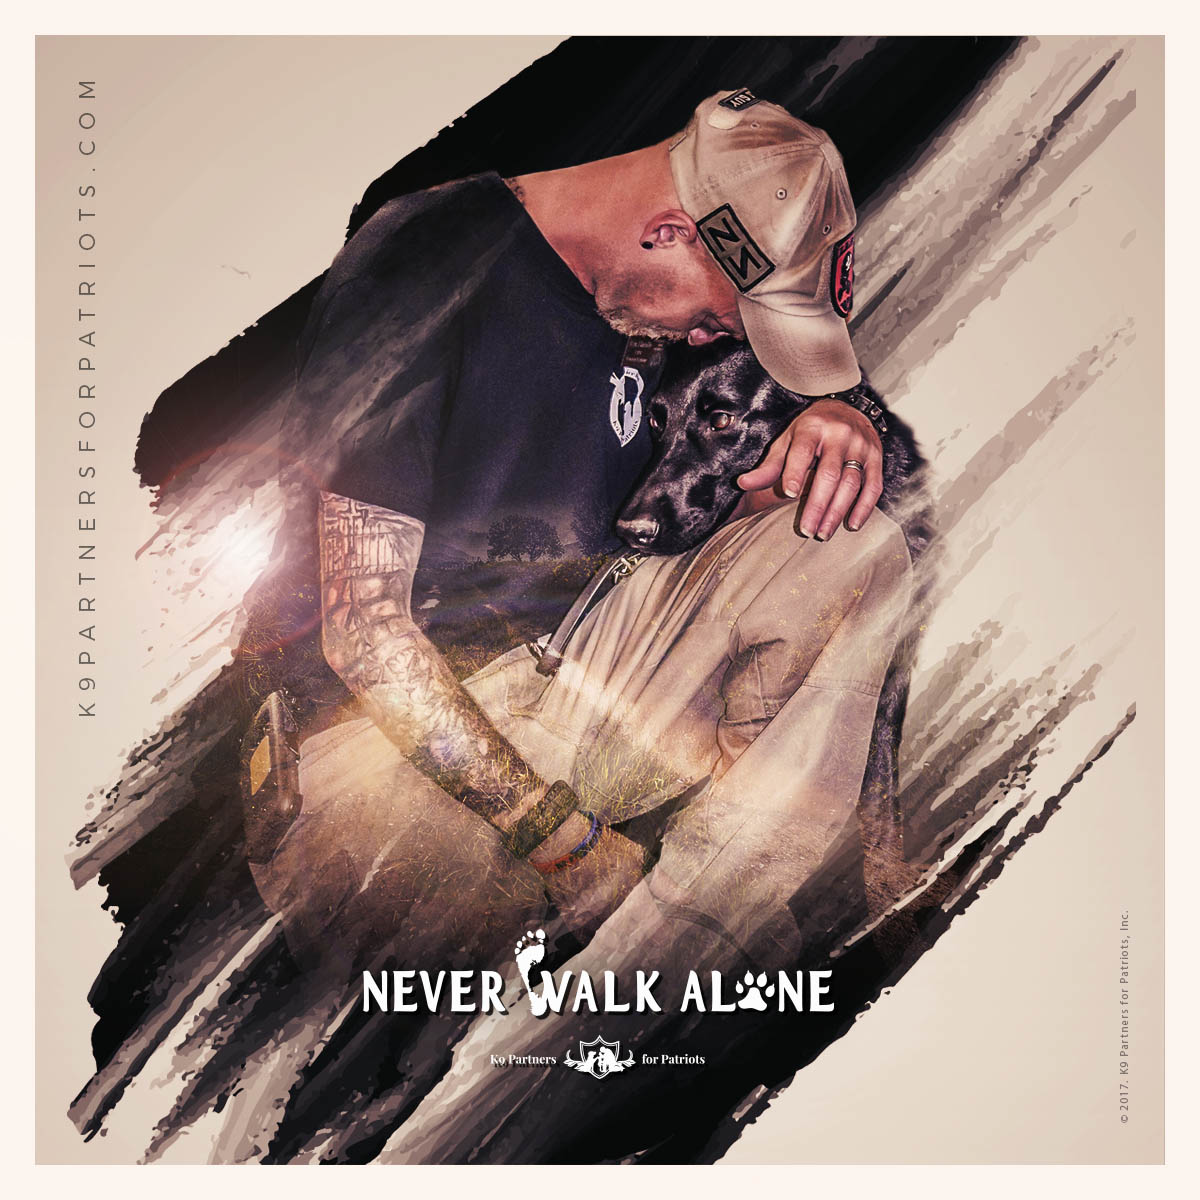 Never Walk Alone - K9 Partners for Patriots, Inc.